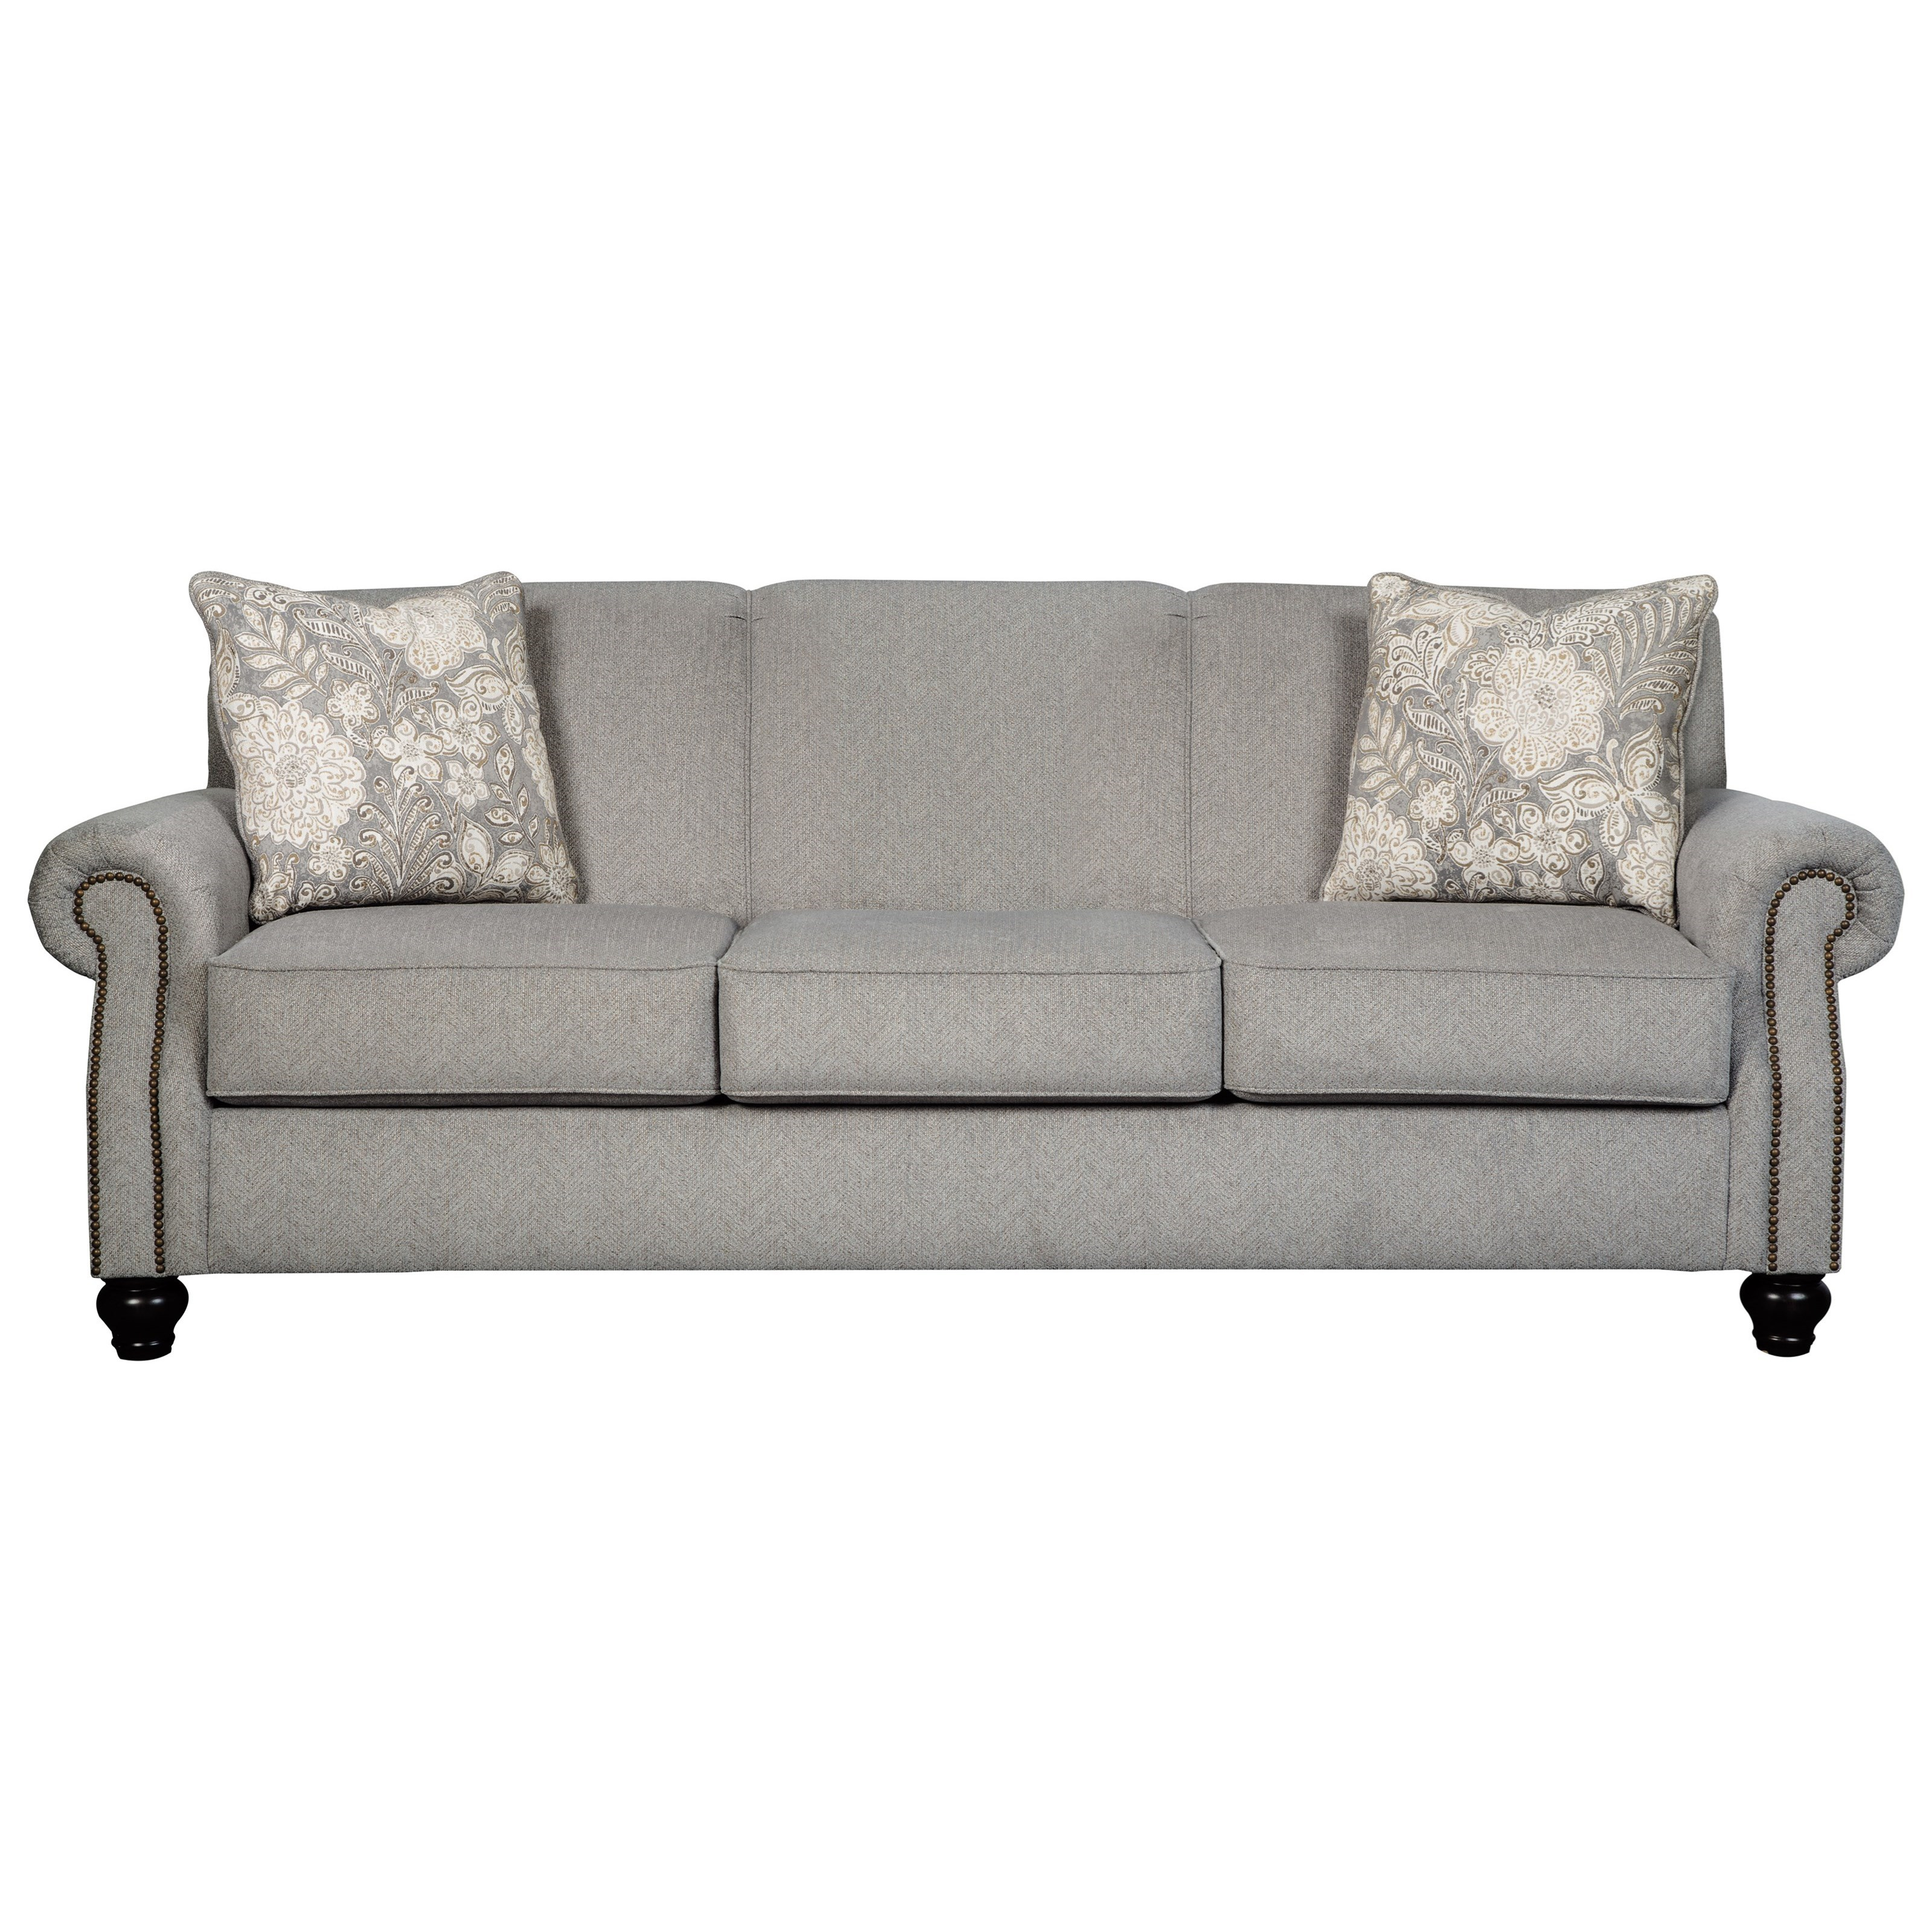 Benchcraft Avelynne Sofa - Item Number: 8130238